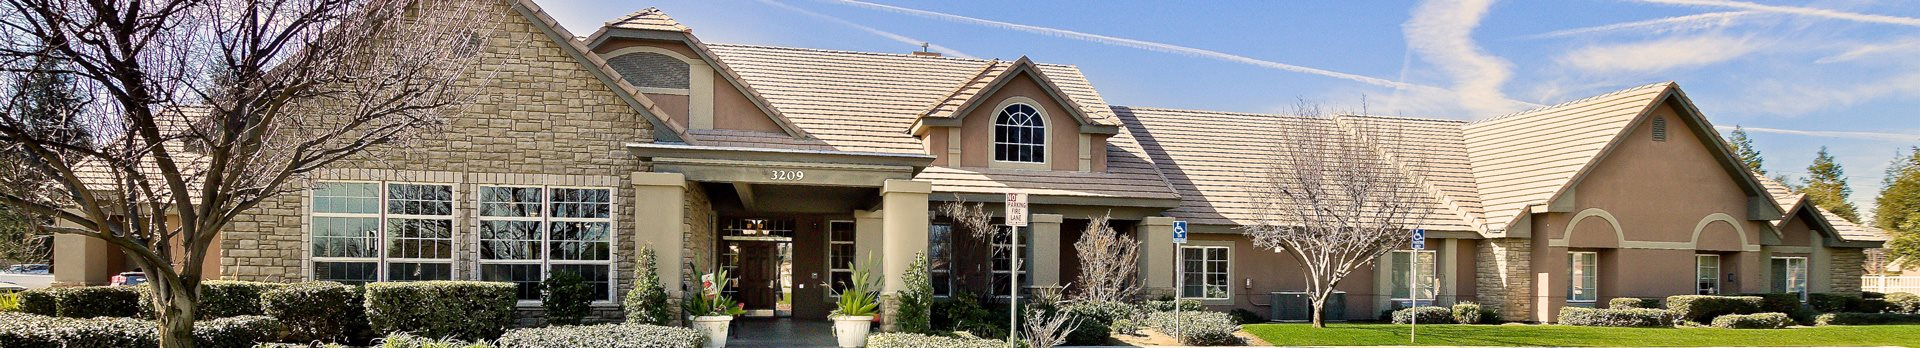 Furnished Units Available at Pacifica Senior Living Bakersfield, Bakersfield, CA